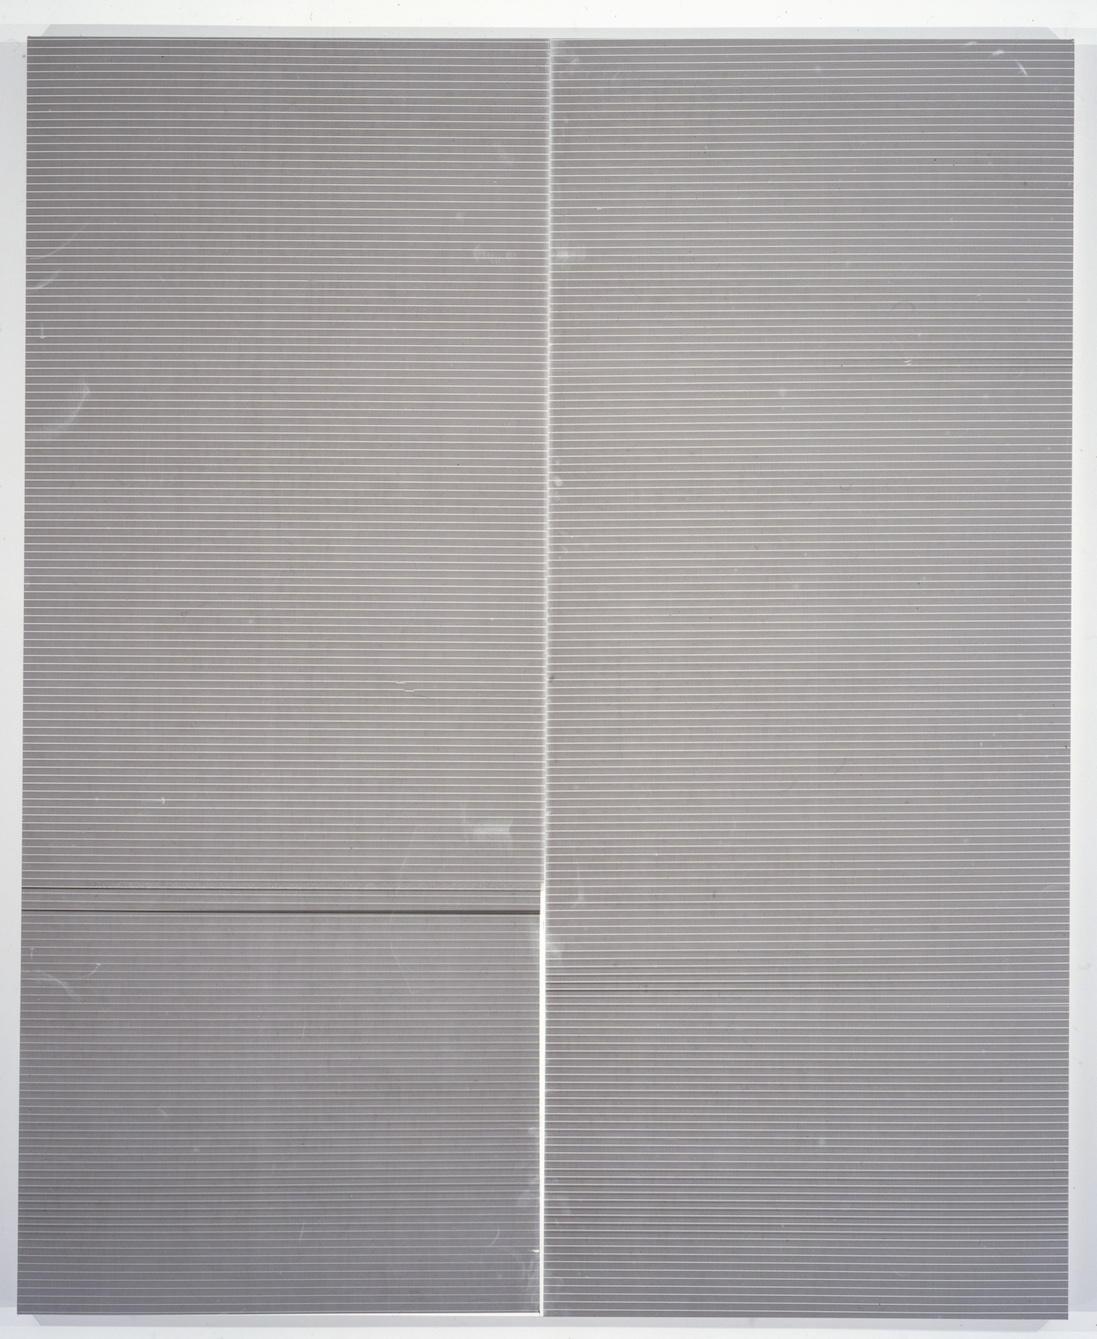 Wade Guyton   Untitled   Epson ultrachrome inkjet on linen   213.4 x 175.3 cm / 84 x 69 In